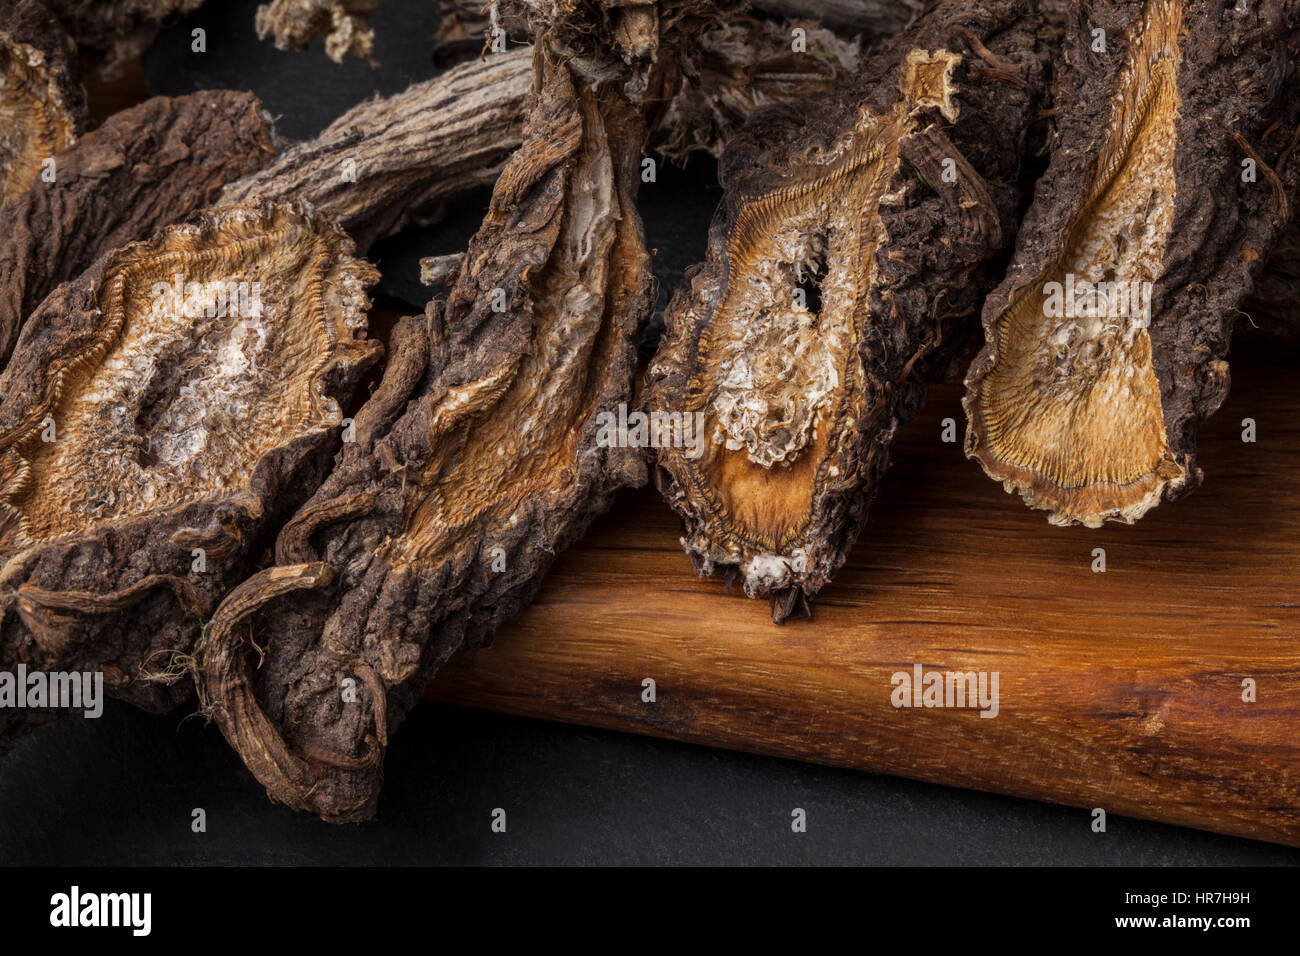 Burdock (Arctium) - medical plant. Dried roots oil are used for the hair treatment and care. - Stock Image